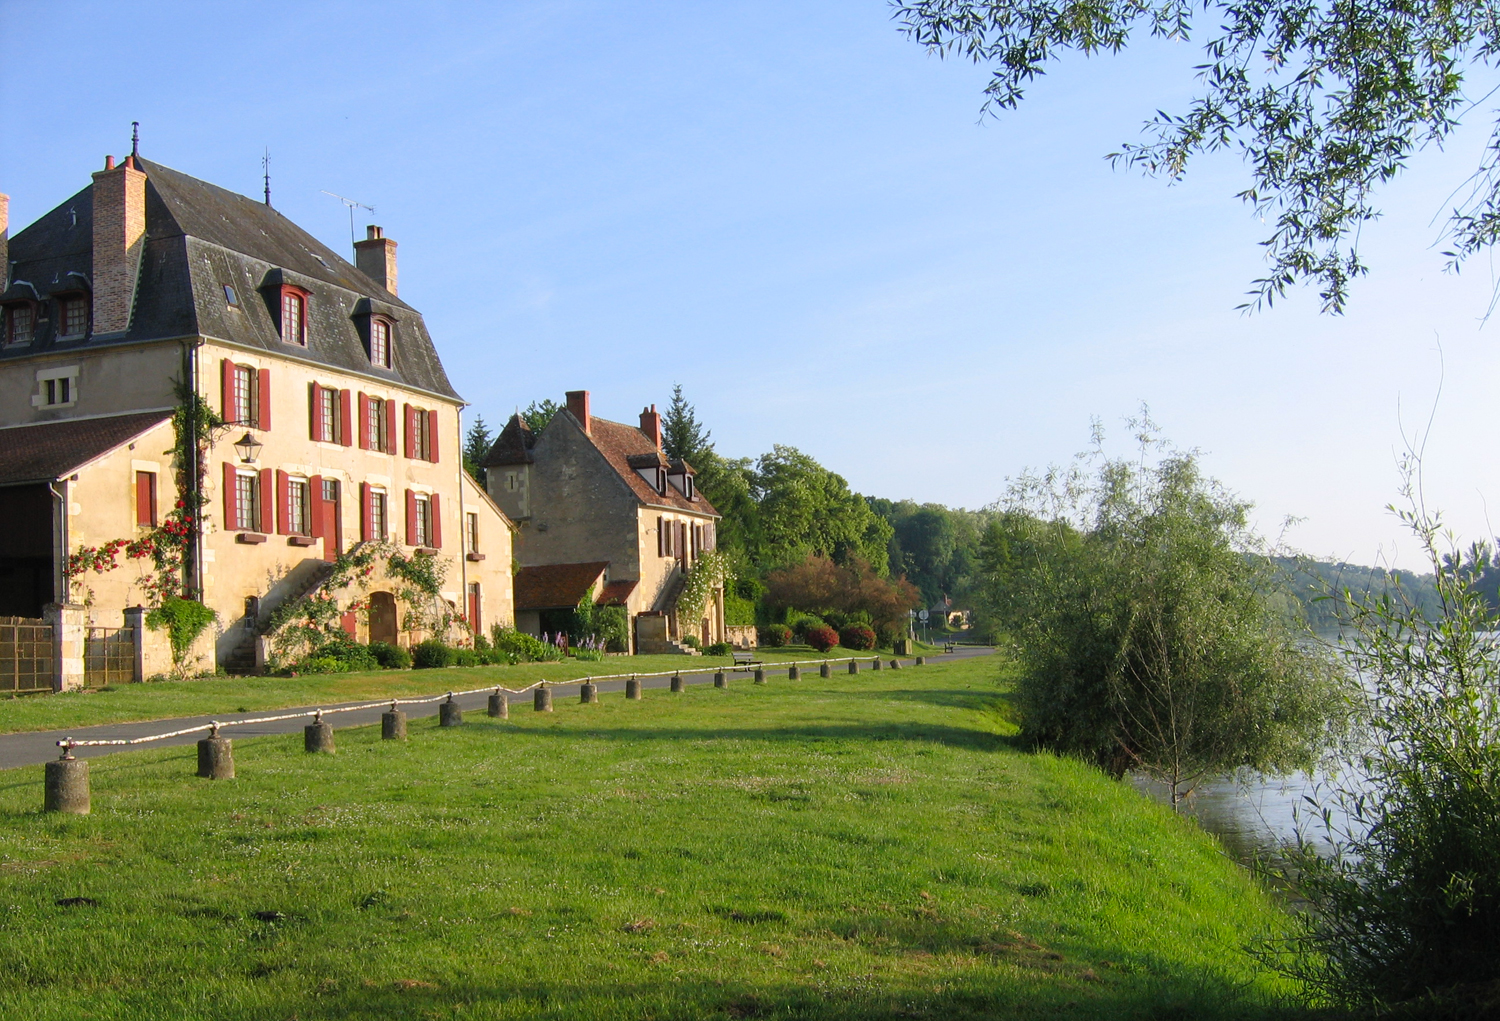 Apremont Sur Allier Chateau Village Apremont Sur Allier